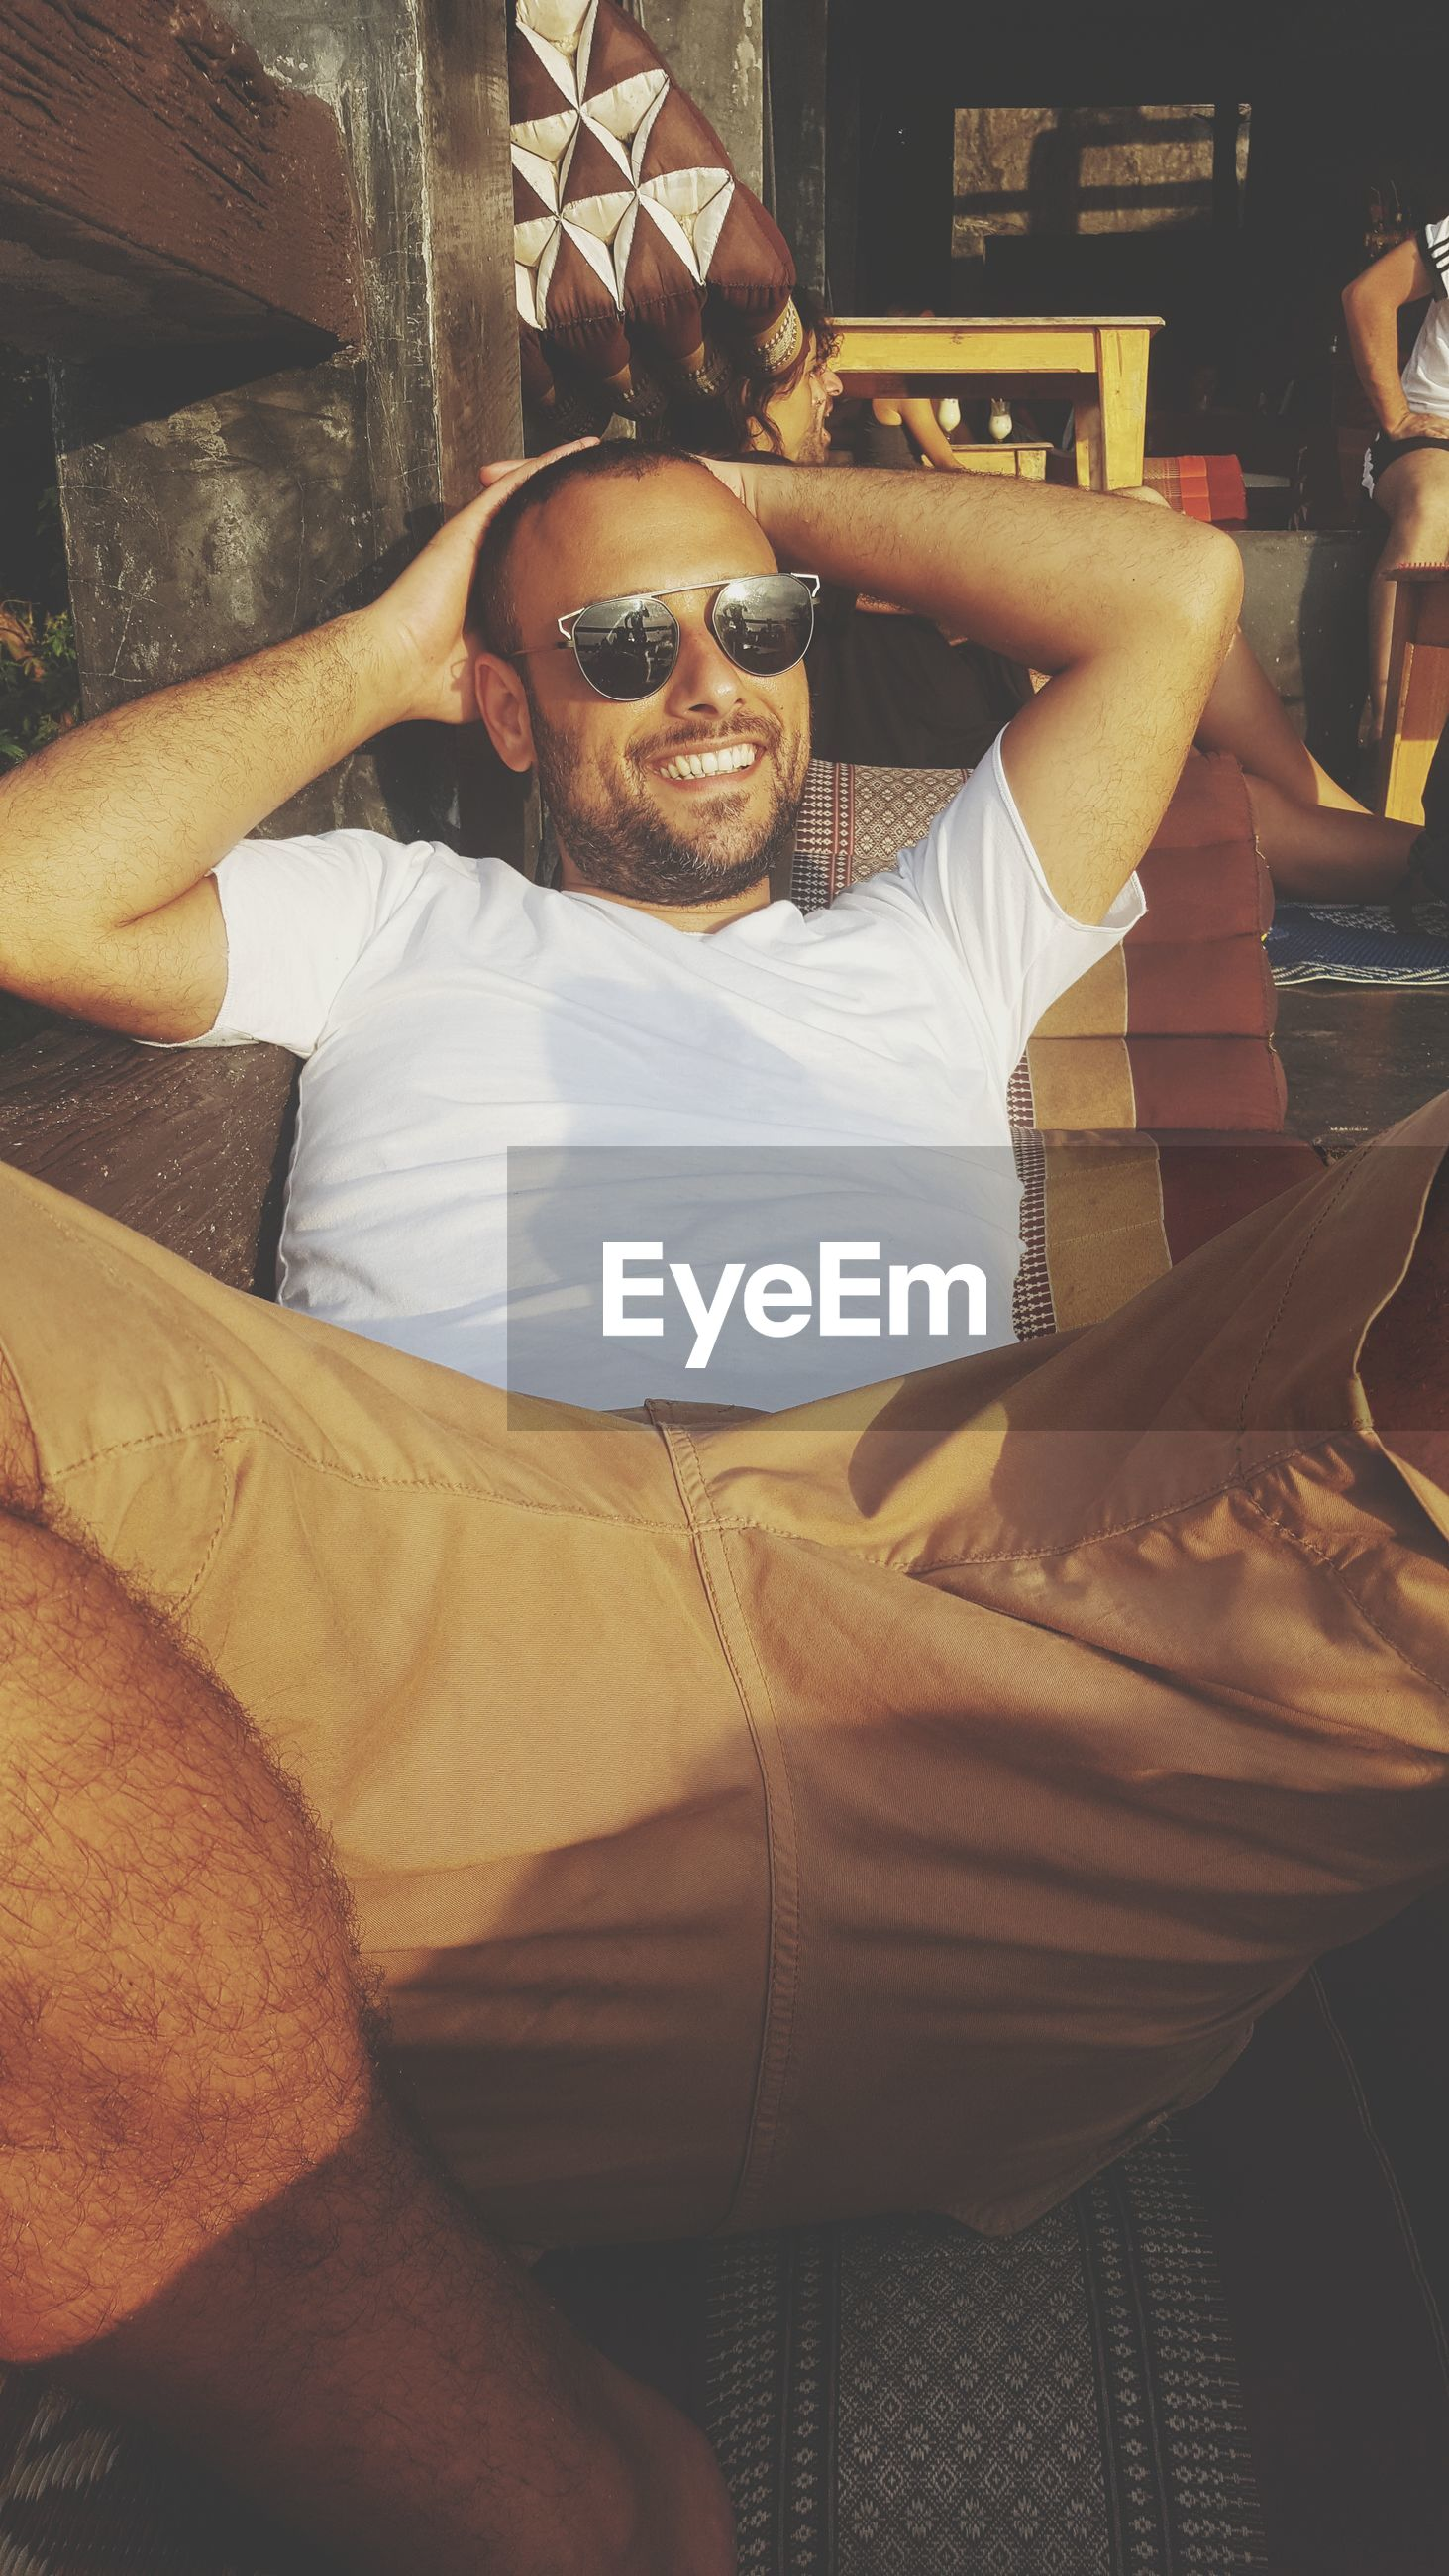 one person, real people, casual clothing, sunglasses, sitting, mid adult men, looking at camera, relaxation, happiness, home interior, front view, leisure activity, lifestyles, mature men, portrait, smiling, beard, indoors, comfortable, men, full length, day, bed, hands behind head, young adult, home showcase interior, one man only, people